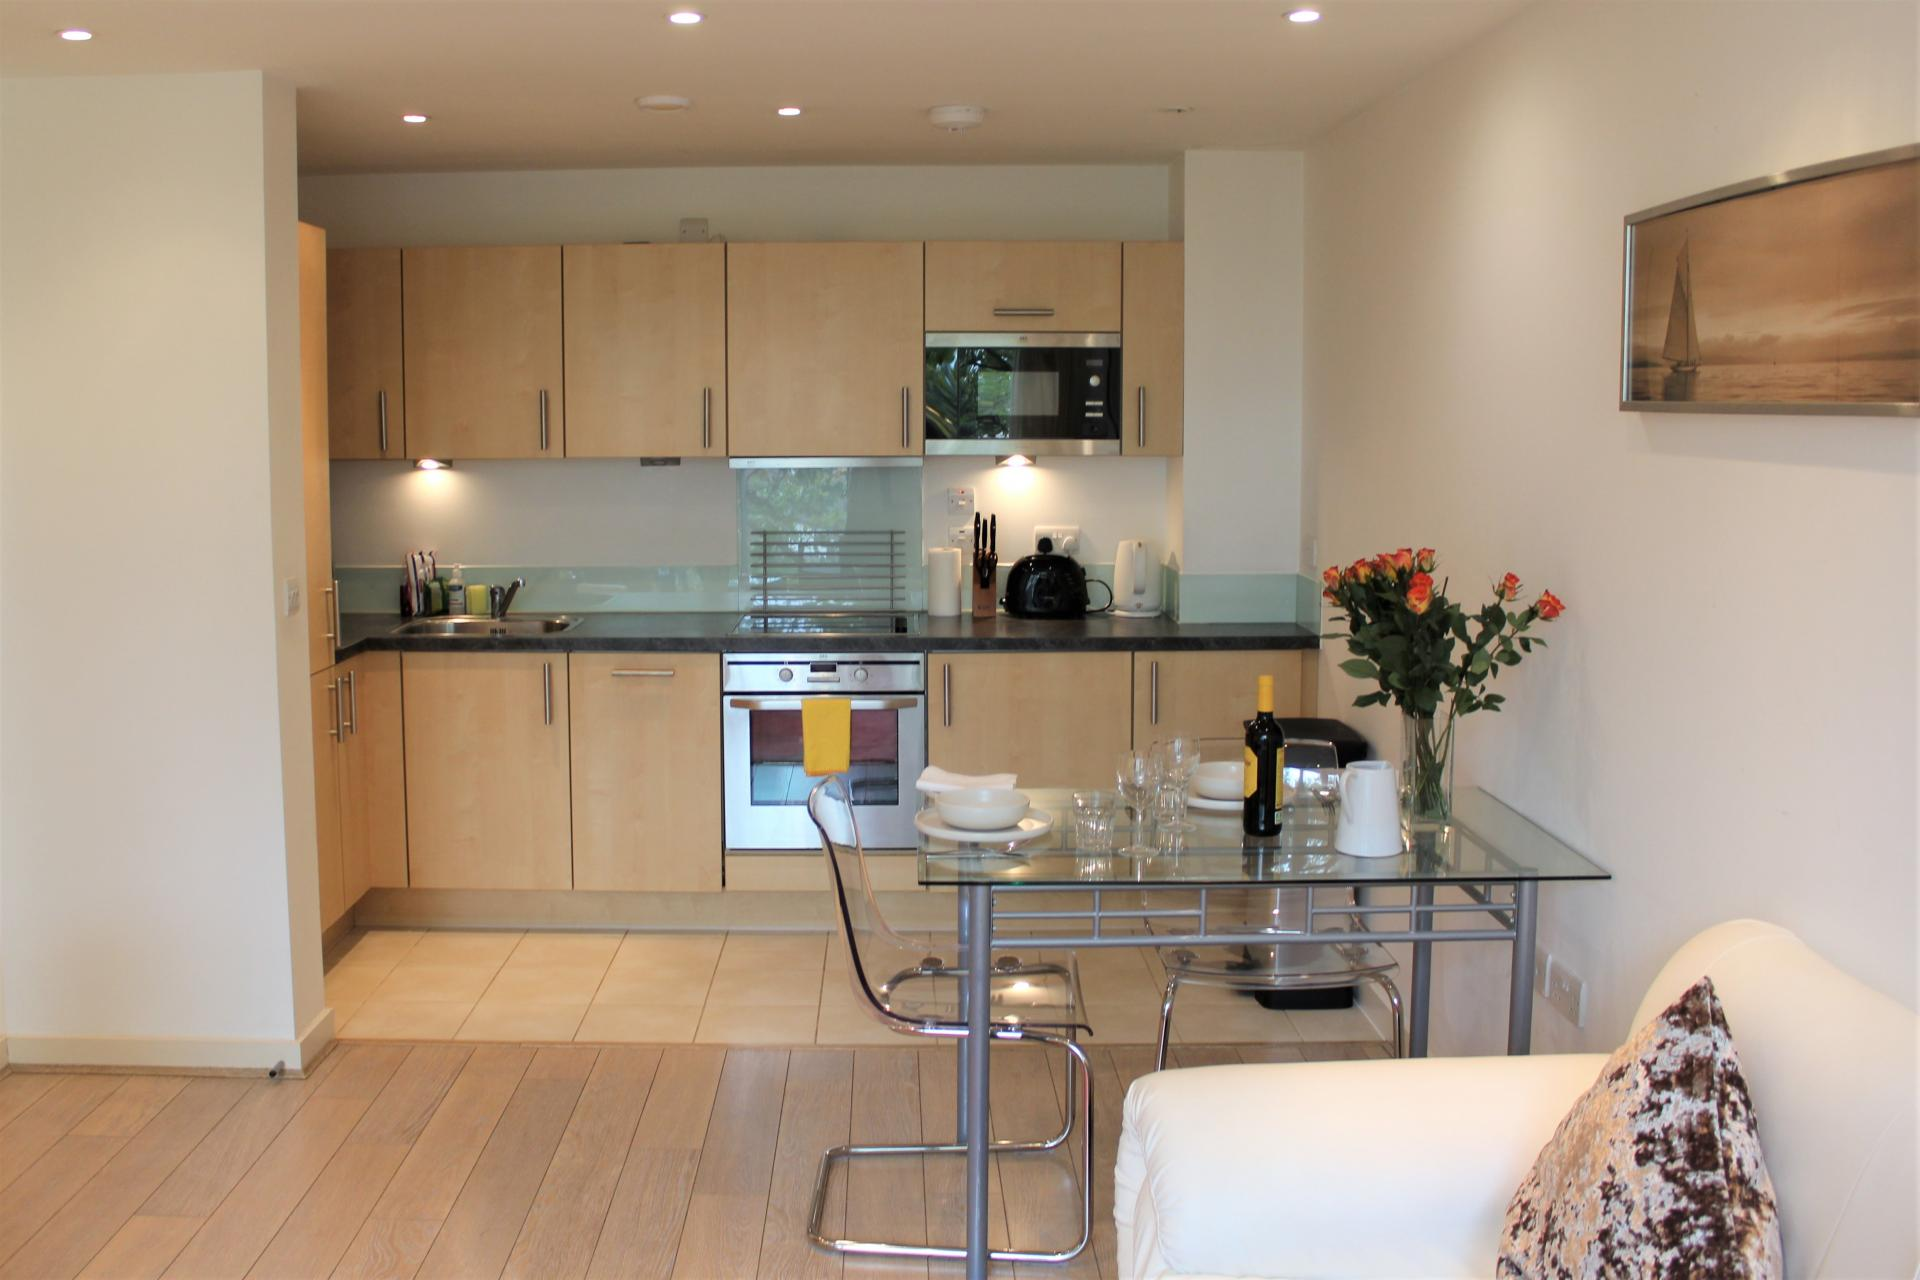 Kitchen and dining area at Gunwharf Quays Apartments, Gunwharf Quays, Portsmouth - Citybase Apartments